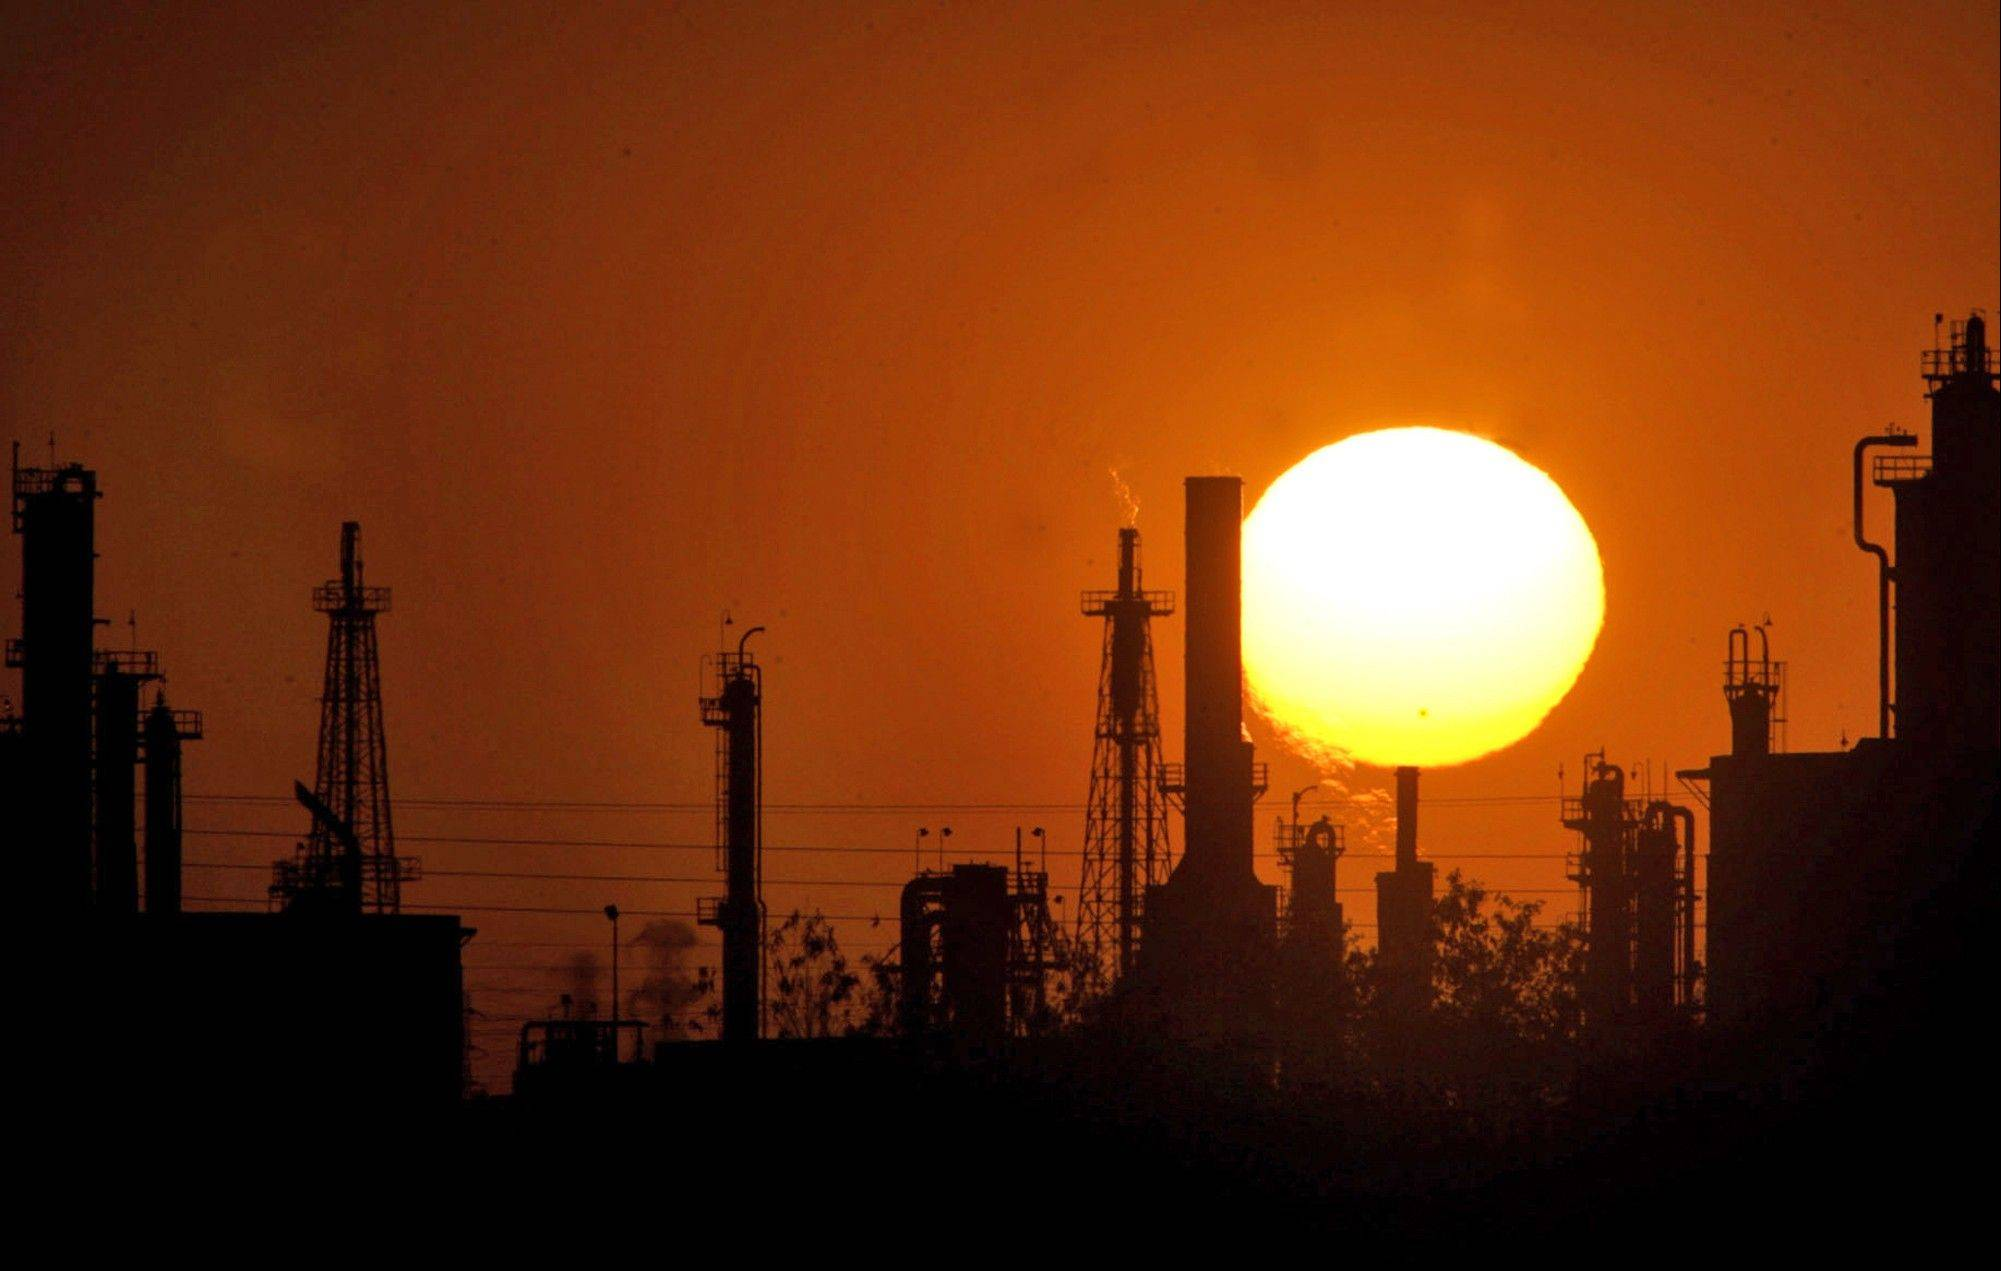 The sun sets behind an oil refinery in Bakersfield, Calif. The prospect of the United States becoming the world's leading oil producer in the next couple decades has served as wakeup call for Canada, which is currently America's leading oil supplier.